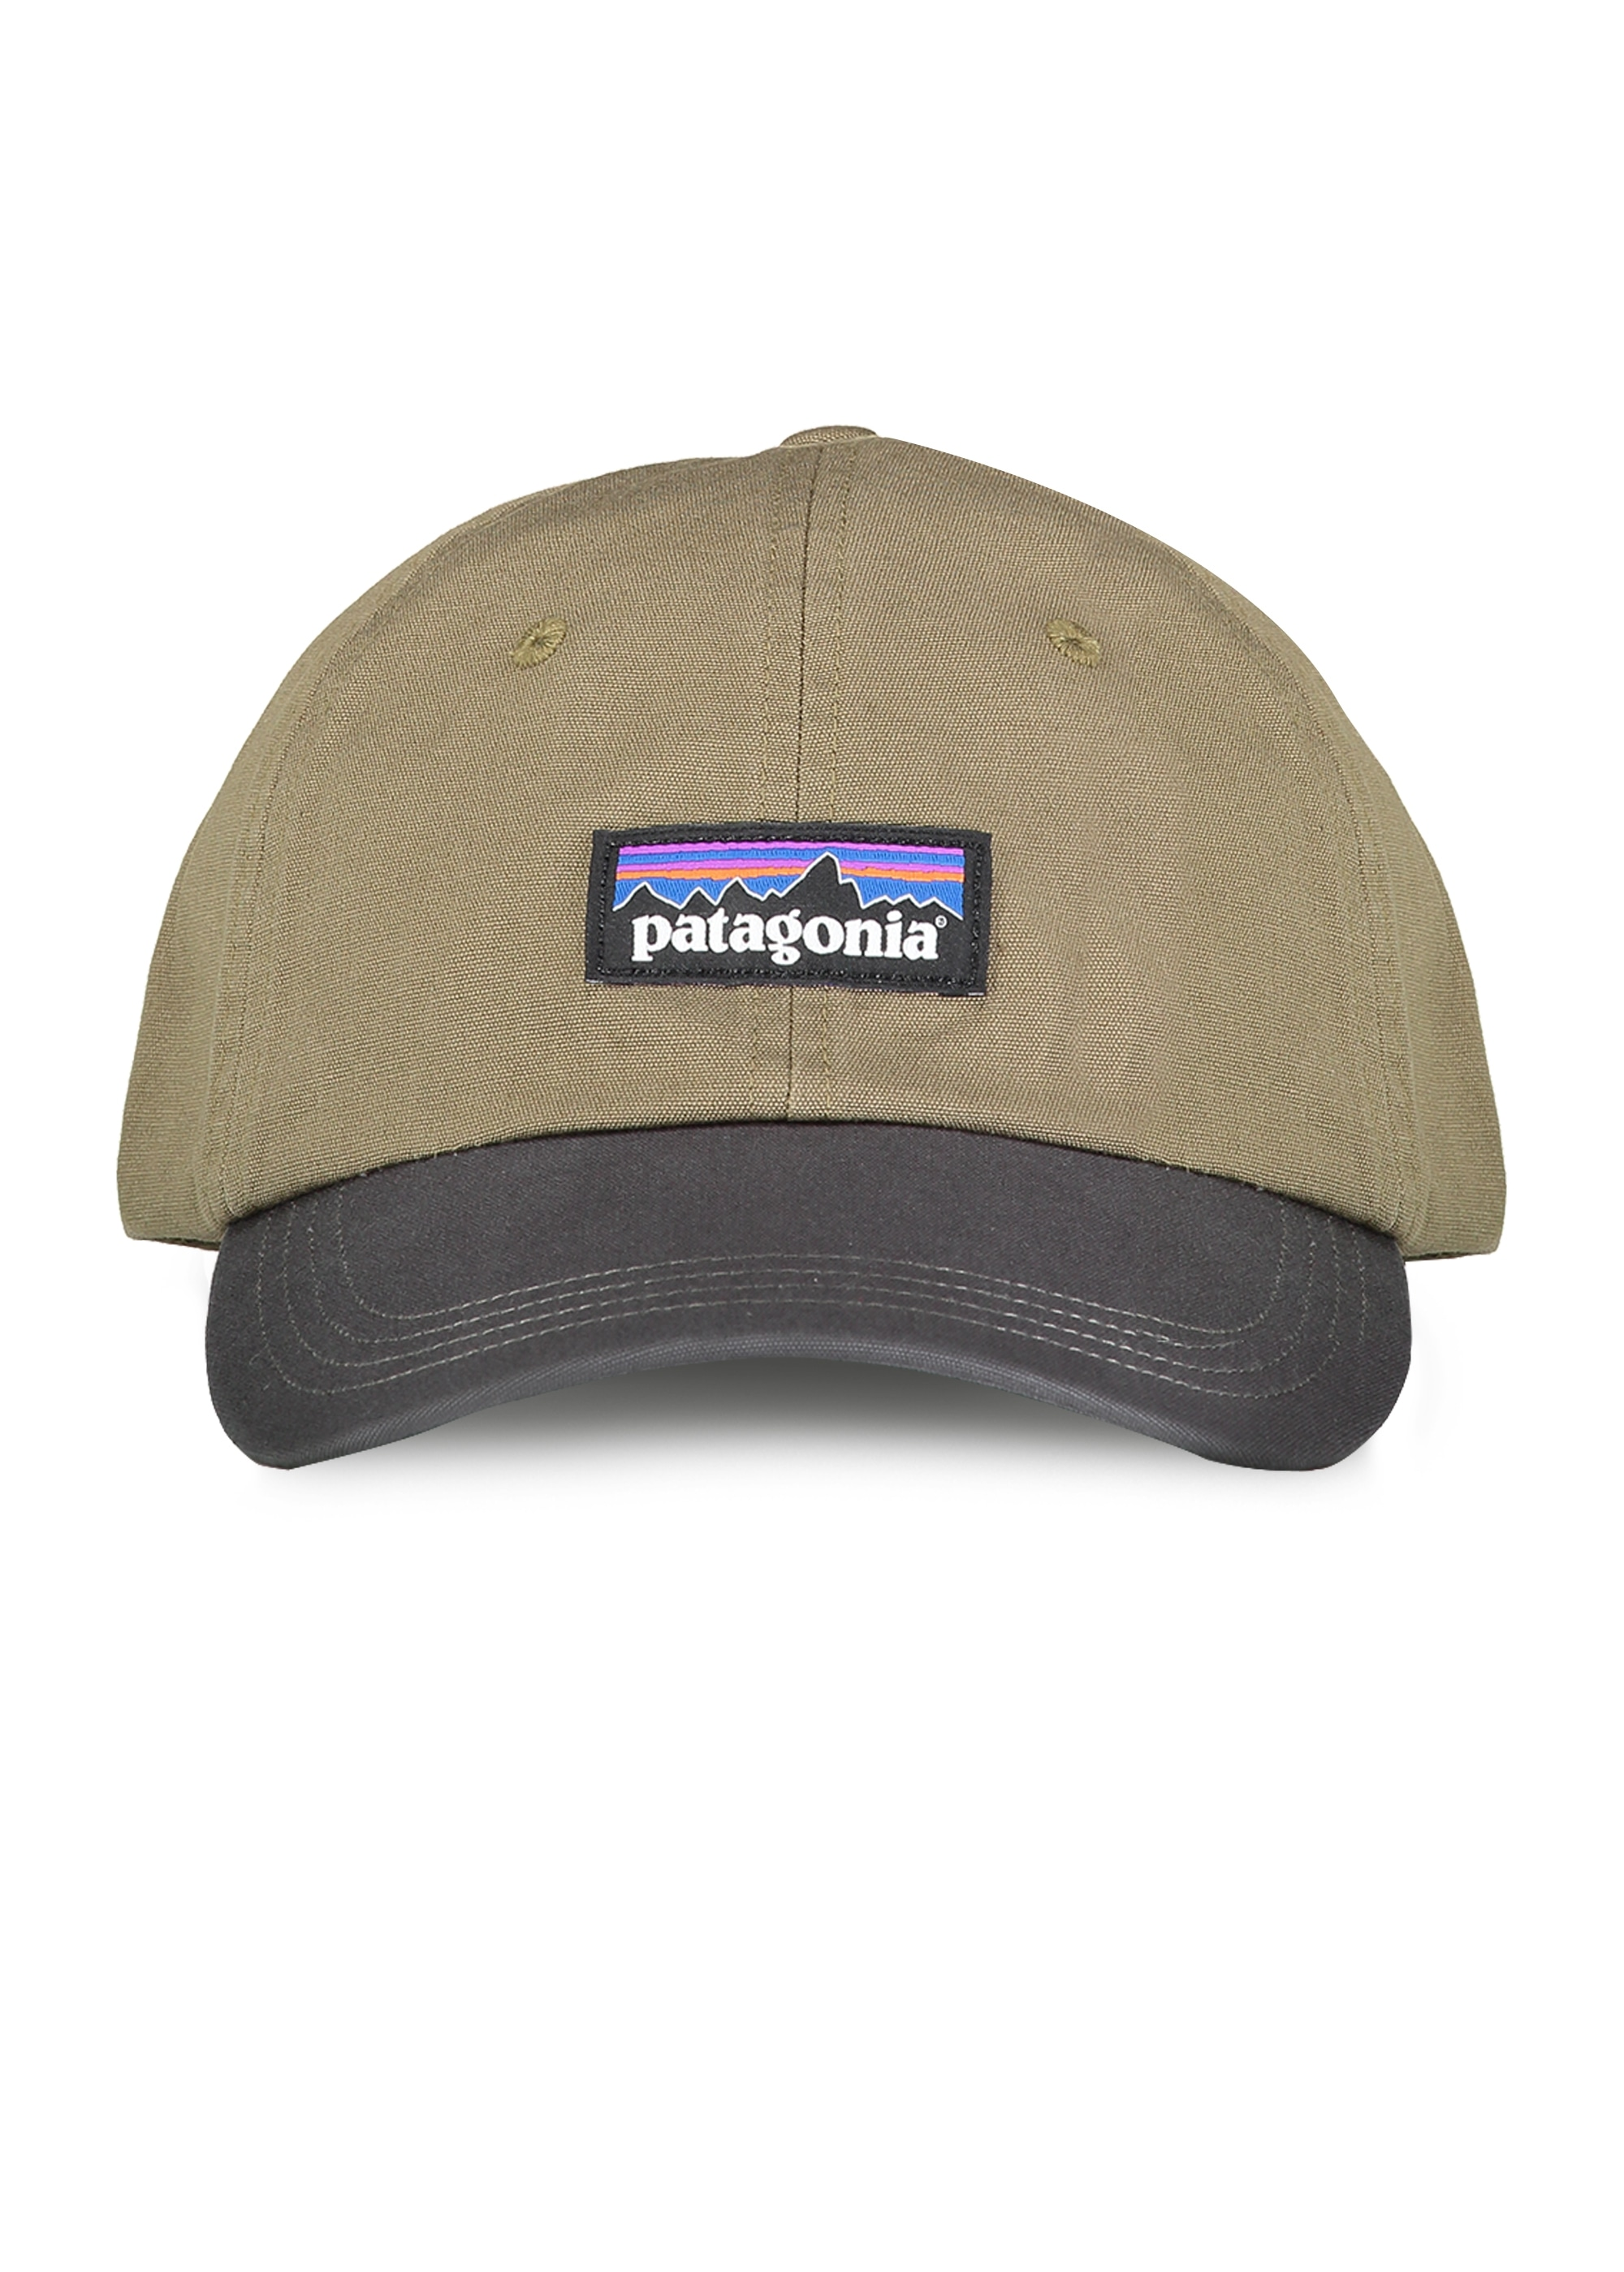 Patagonia P-6 Label Trad Cap - Dark Ash - Headwear from Triads UK 239b6efdfe4